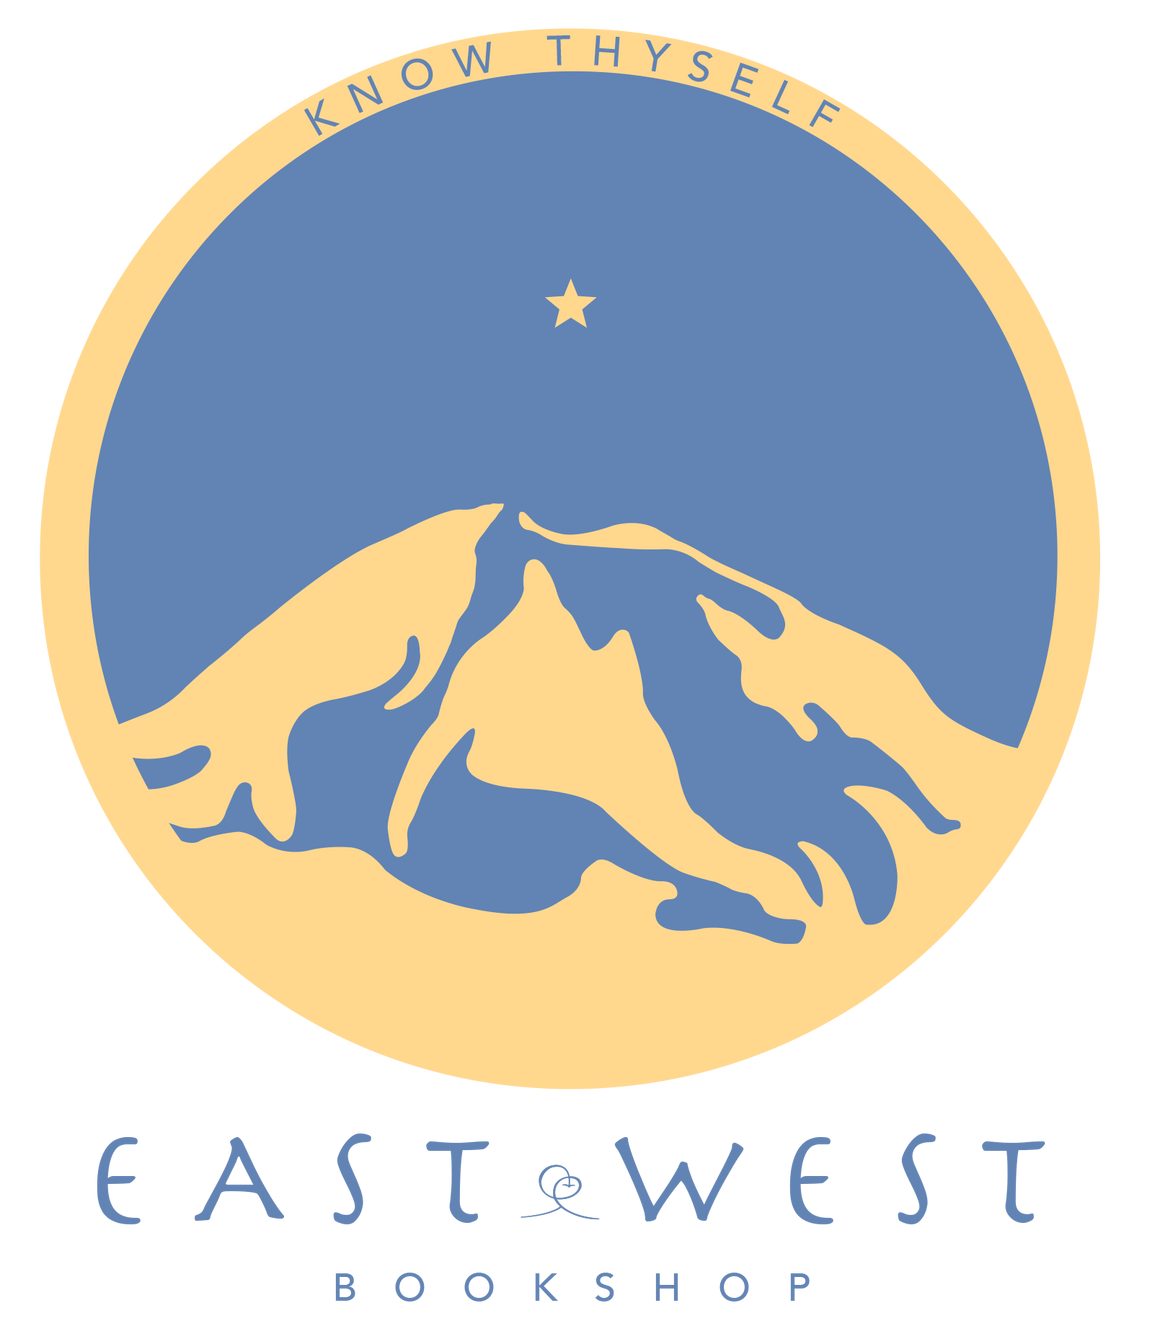 February 09, 2020 - Sunday 12-7pm - East West Angel Member Shopping Weekend - with East West